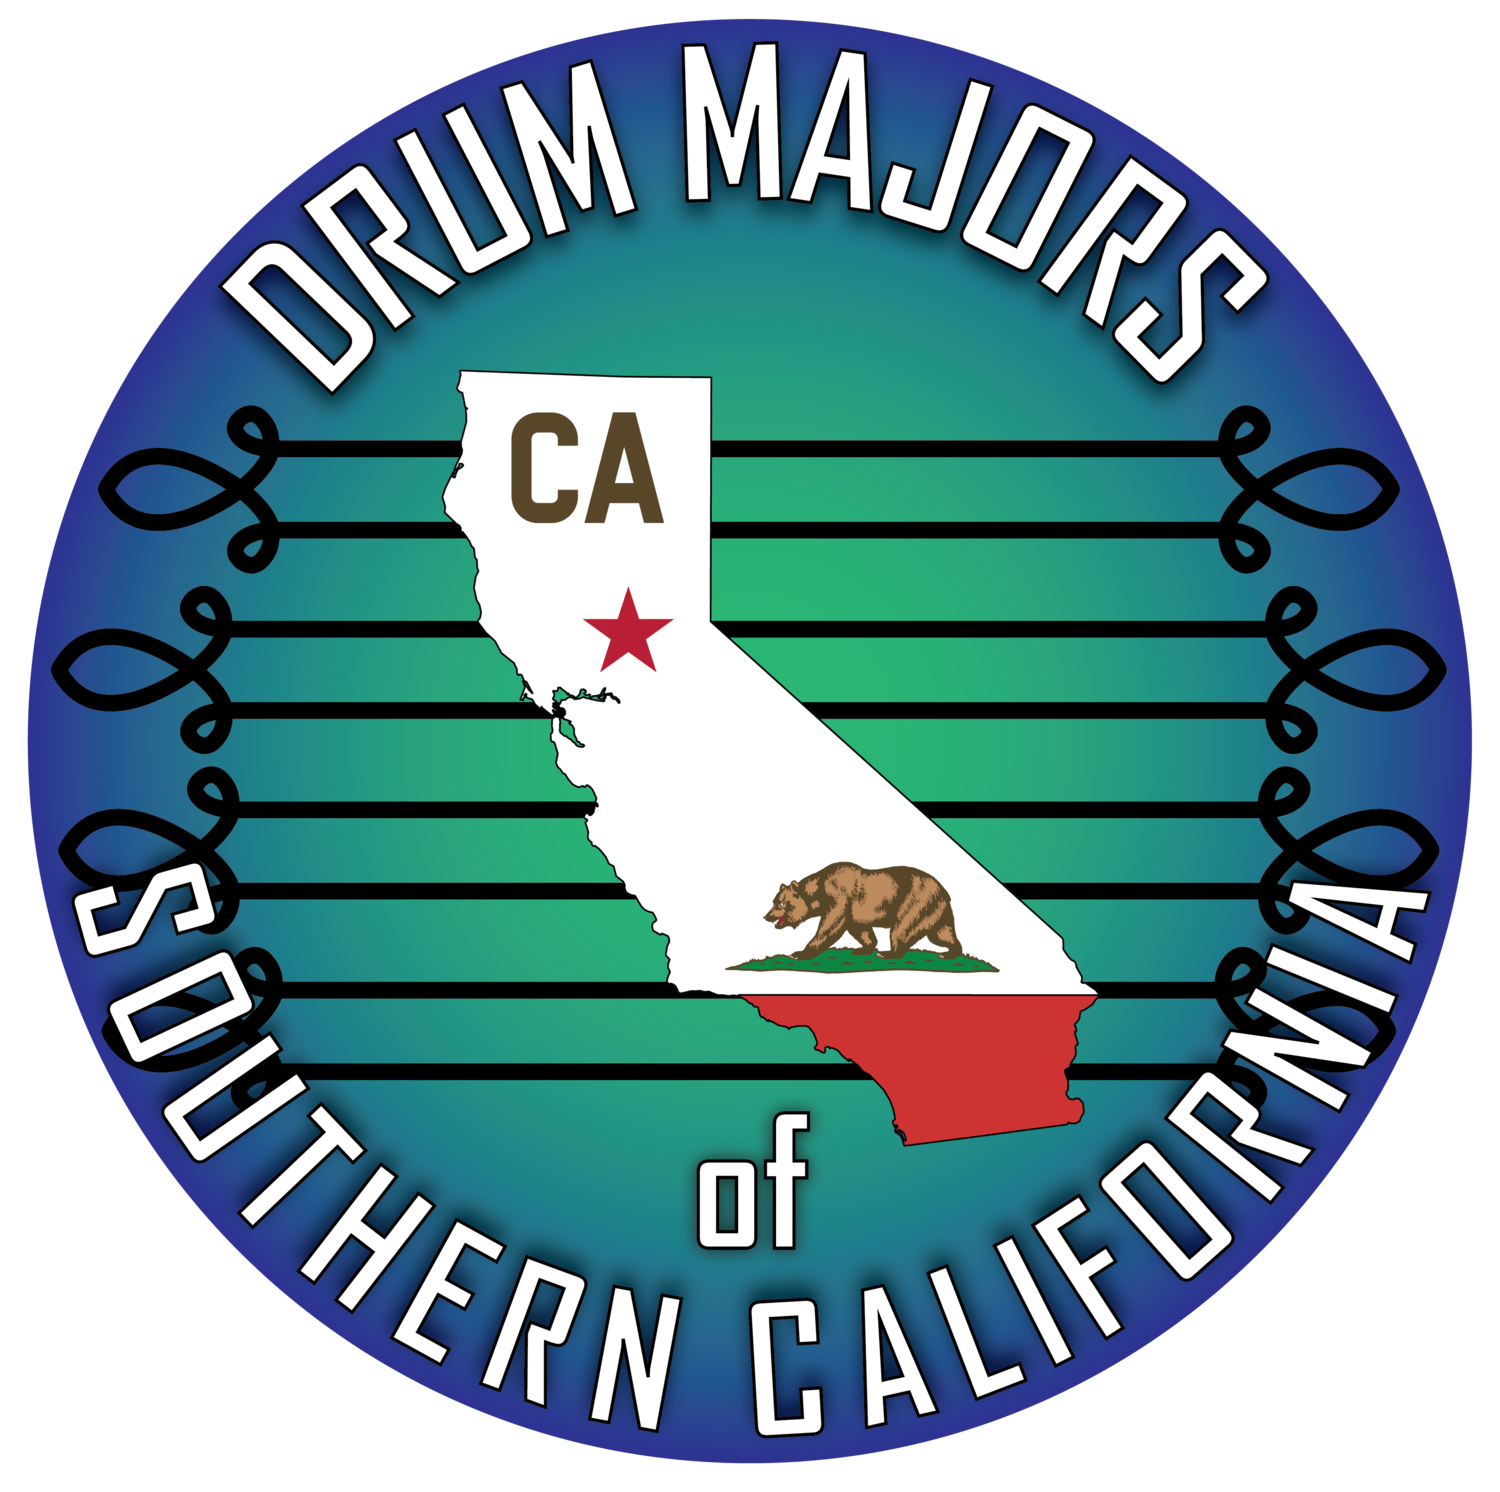 Prize clipart first position. Register now drum majors